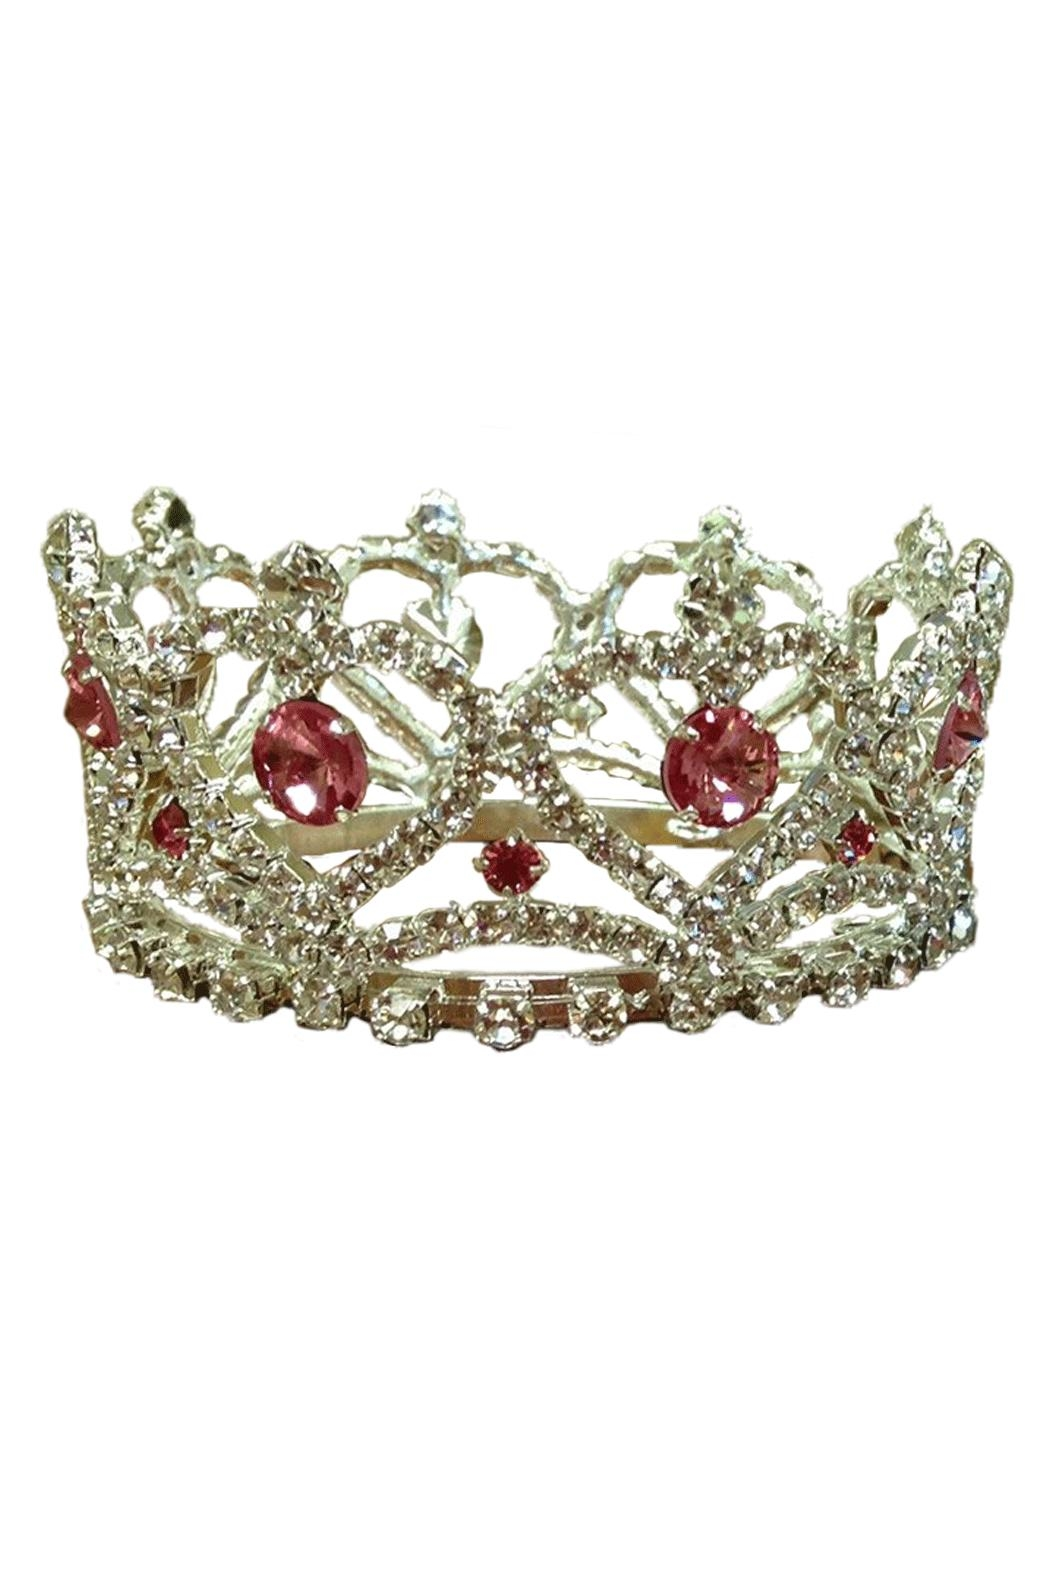 ENCHANTED SHIMMER DESIGNS Baby Crown from Arkansas by haute par